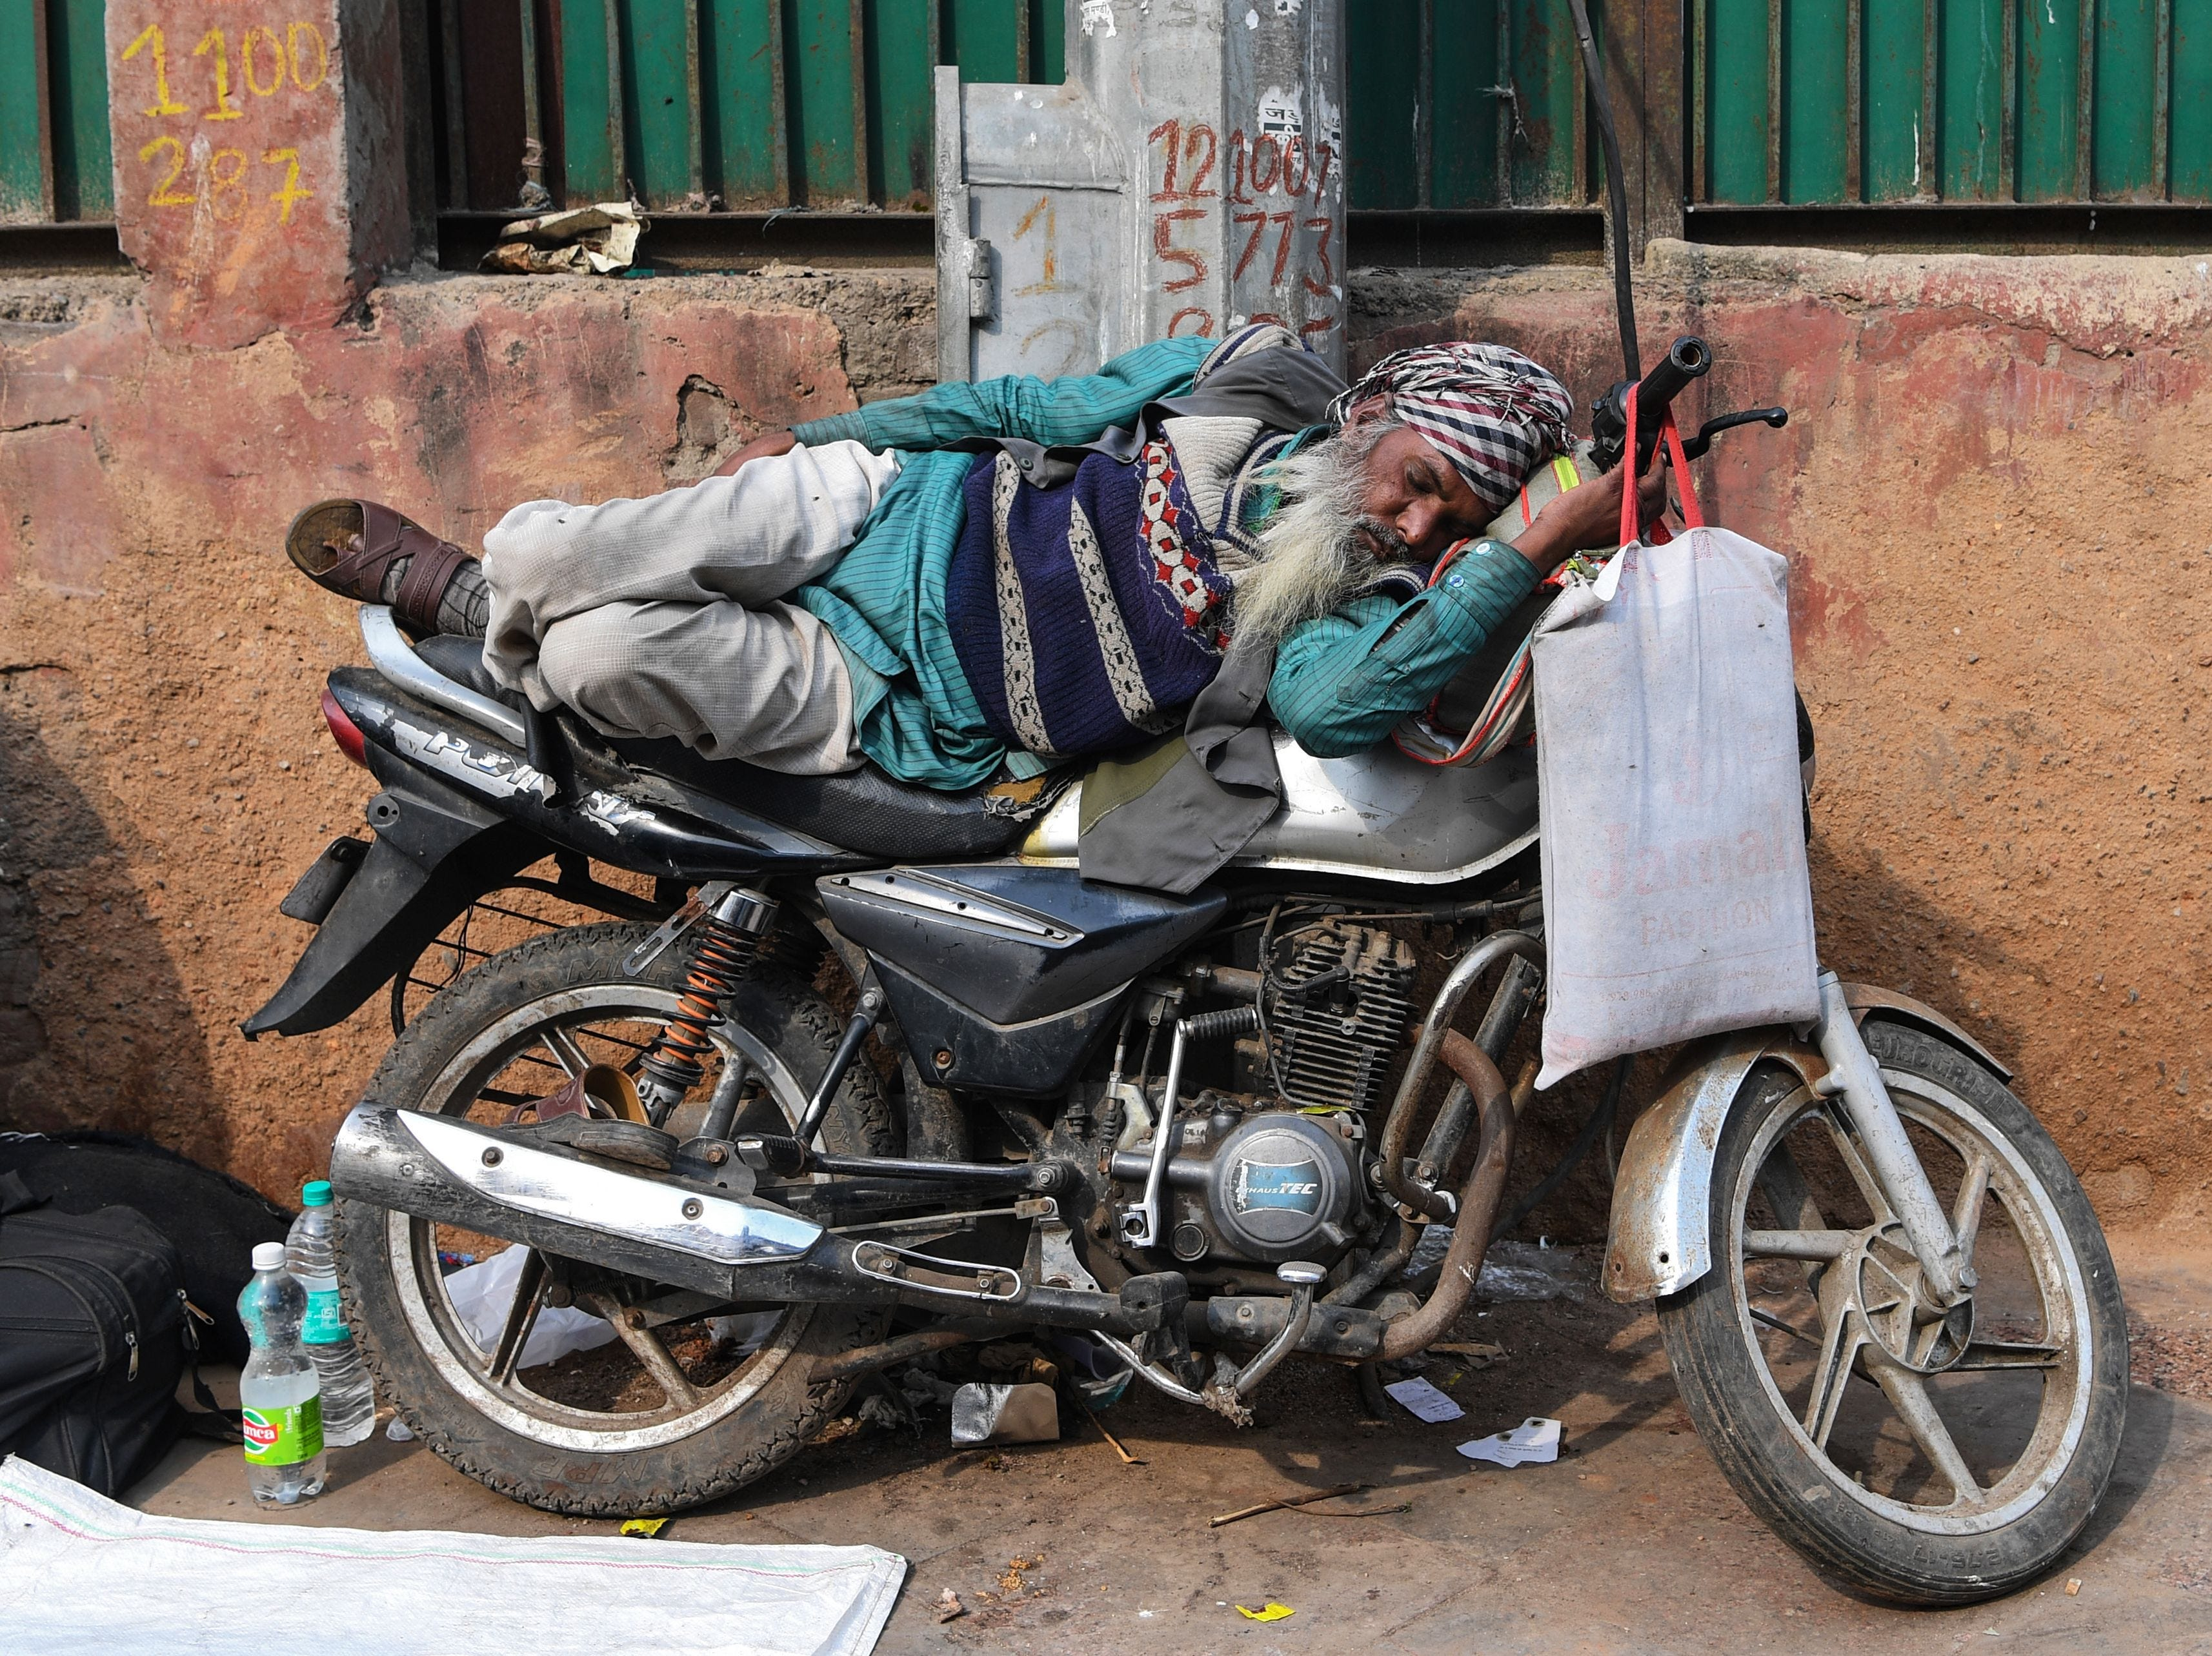 A man sleeps on a motorbike in the old quarters of New Delhi on Wednesday, Jan. 30, 2019.